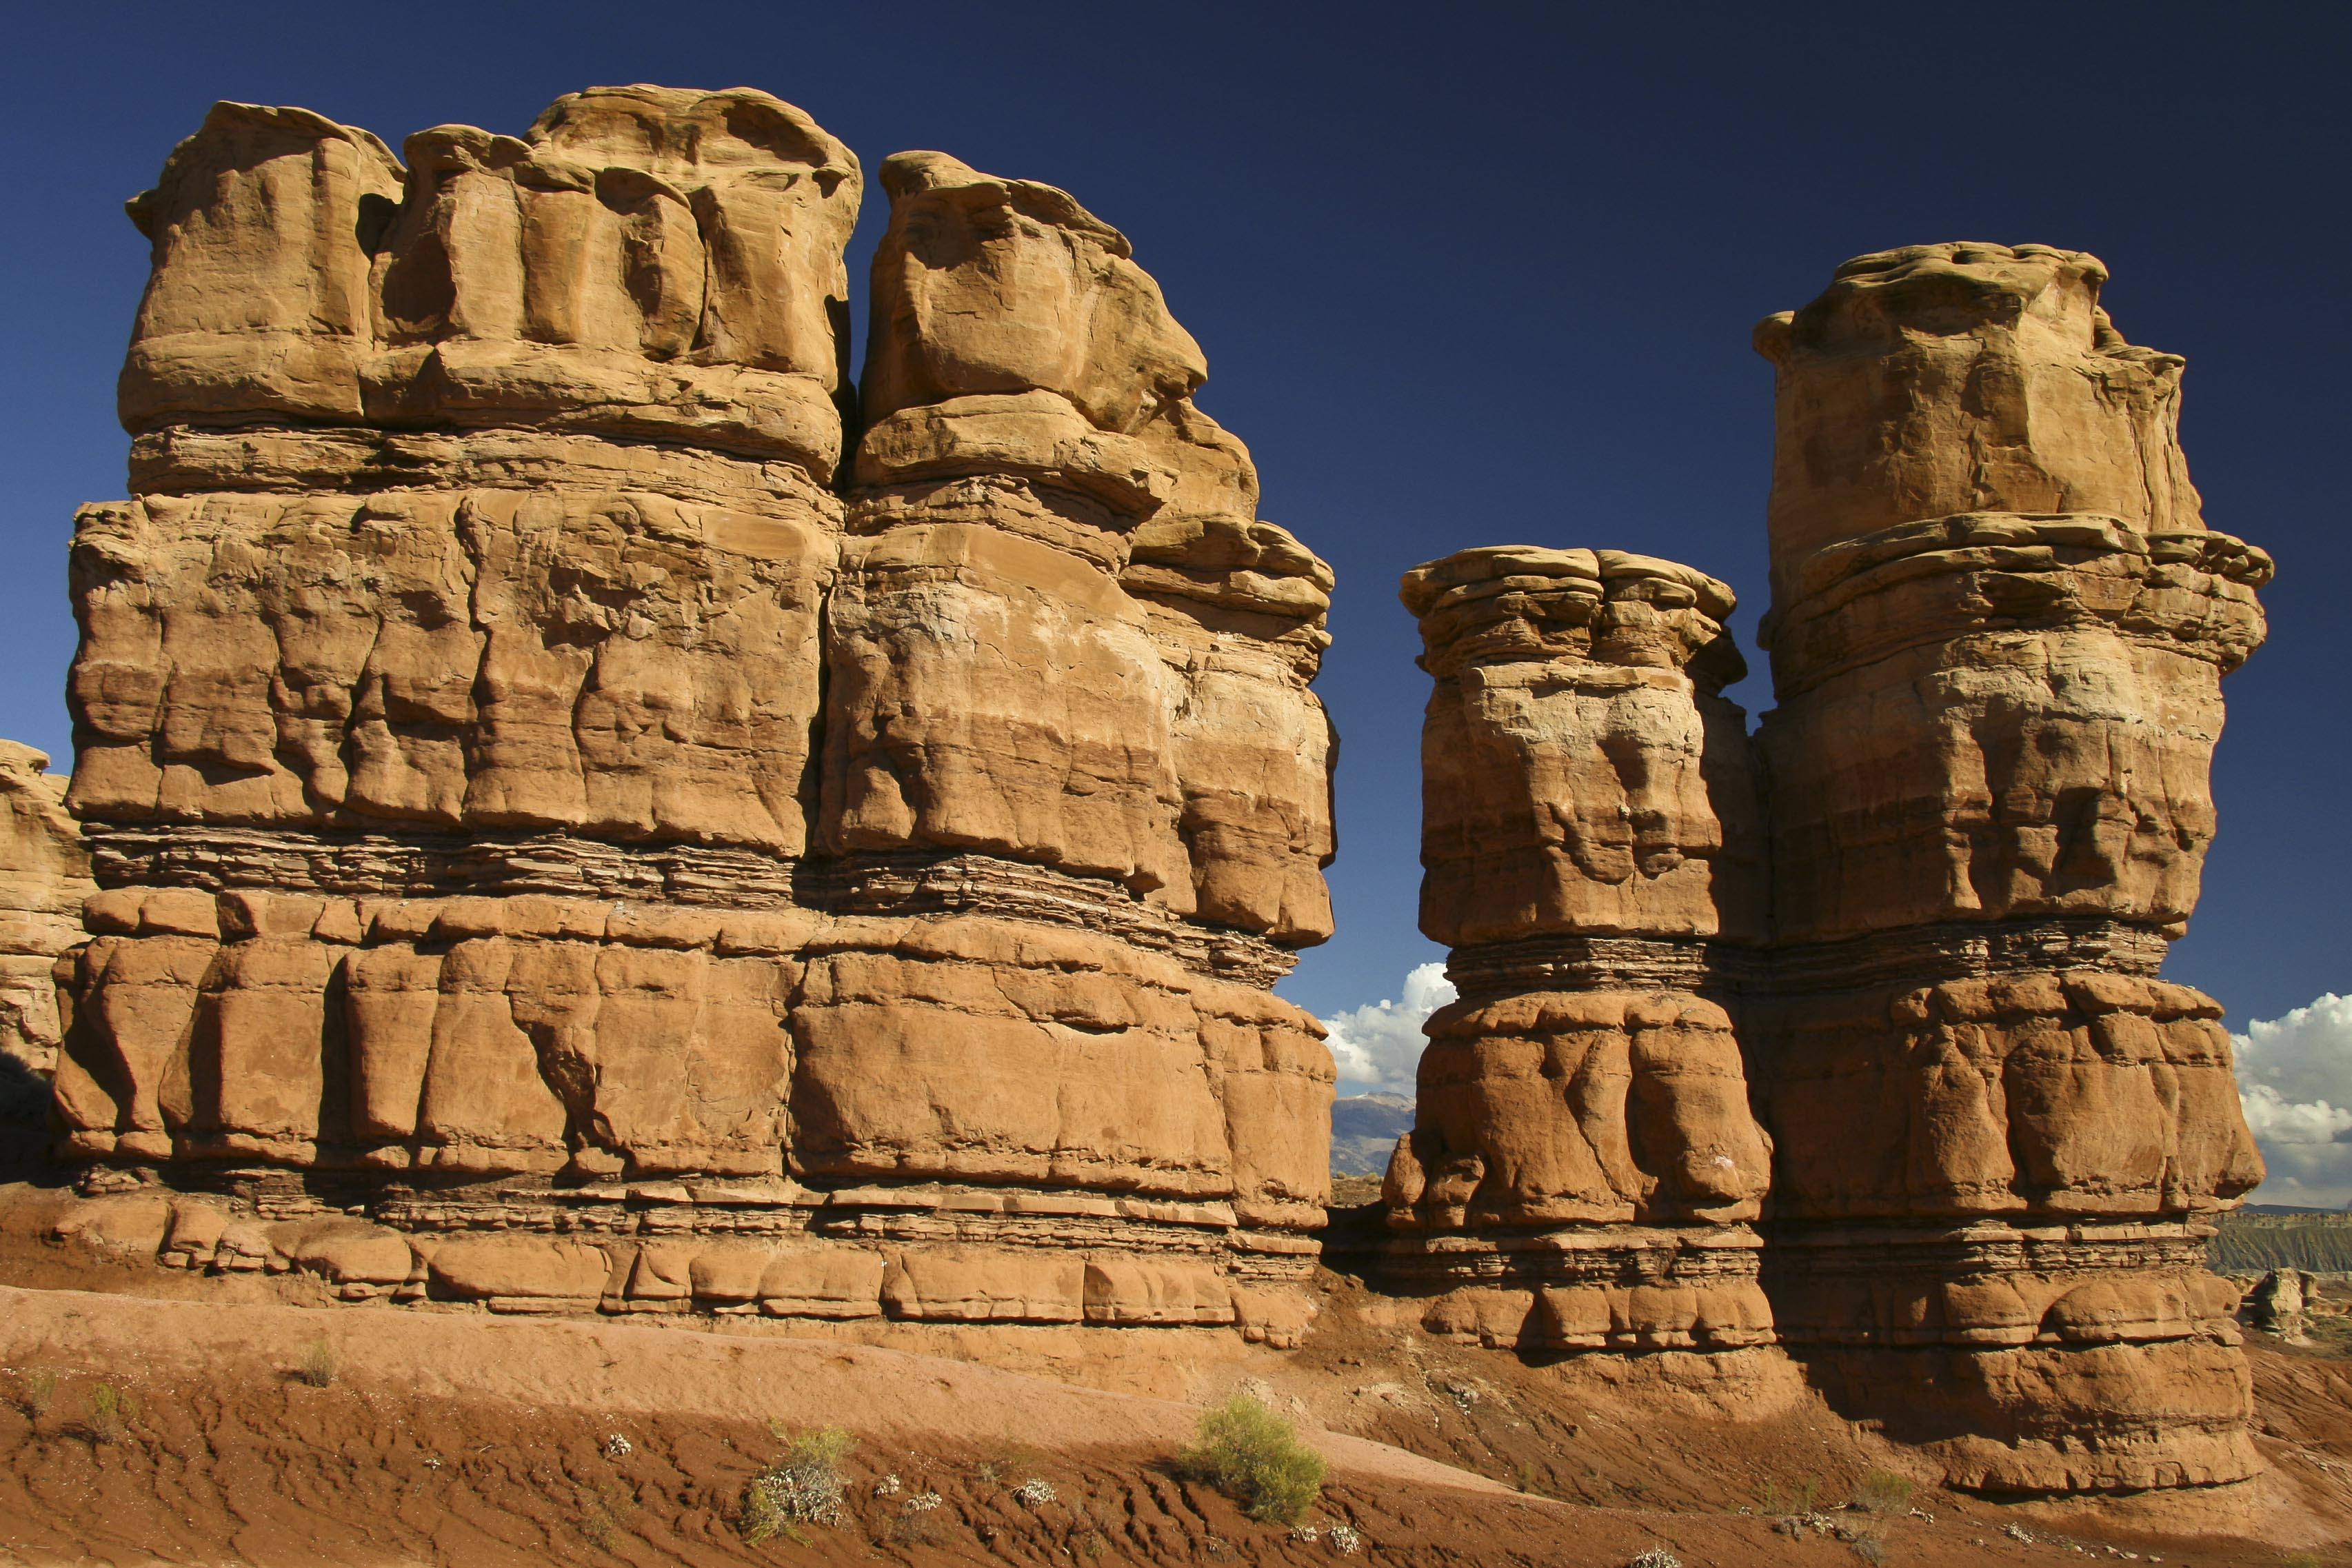 The 15 most amazing landscapes and rock formations